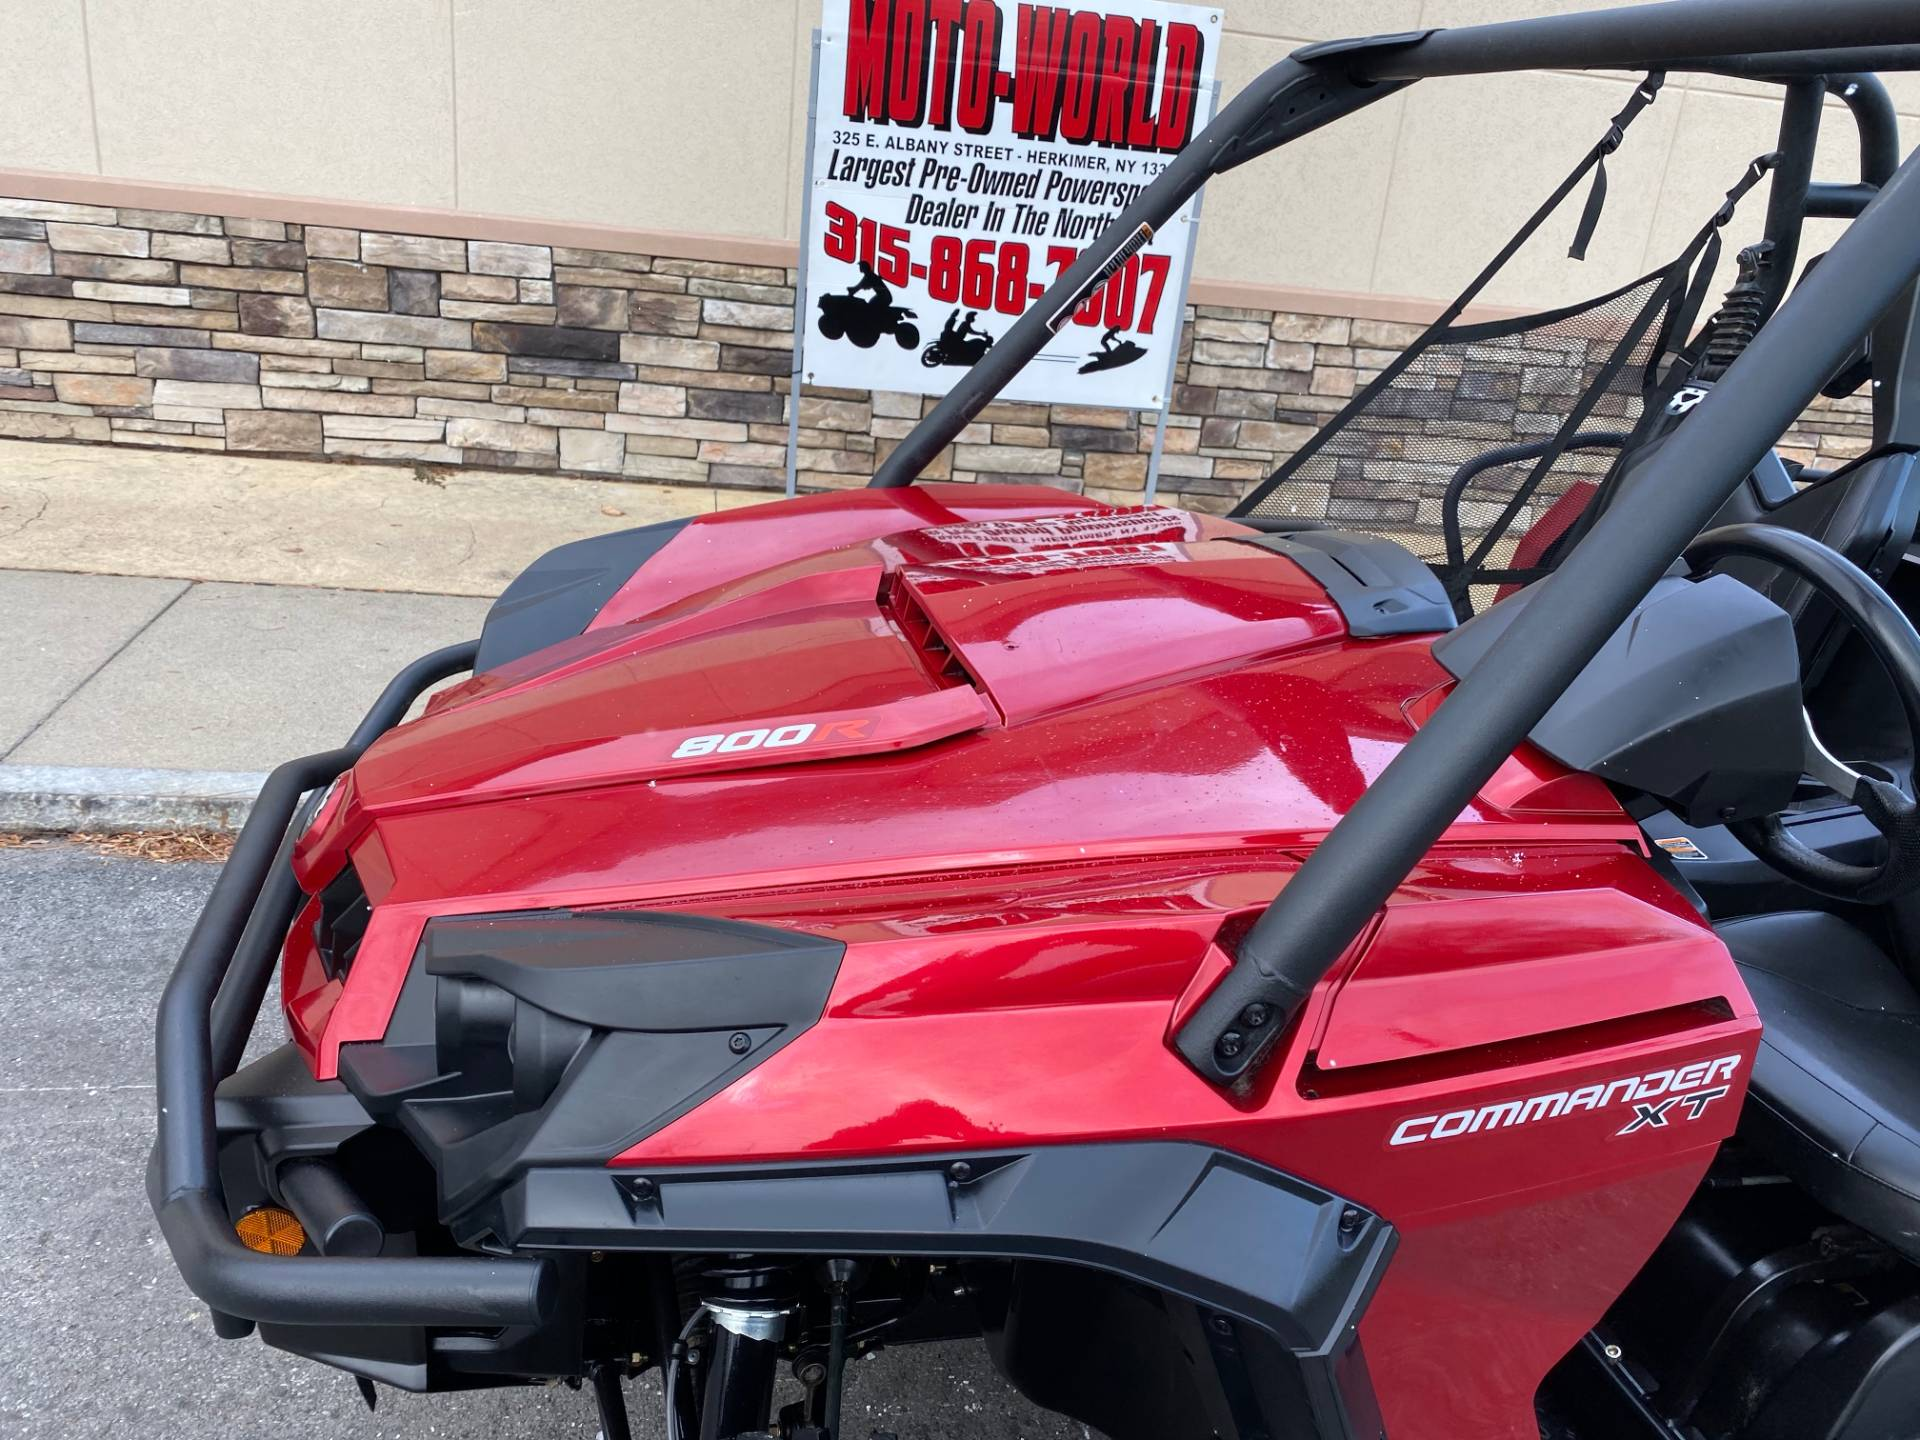 2018 Can-Am Commander XT 800R in Herkimer, New York - Photo 19